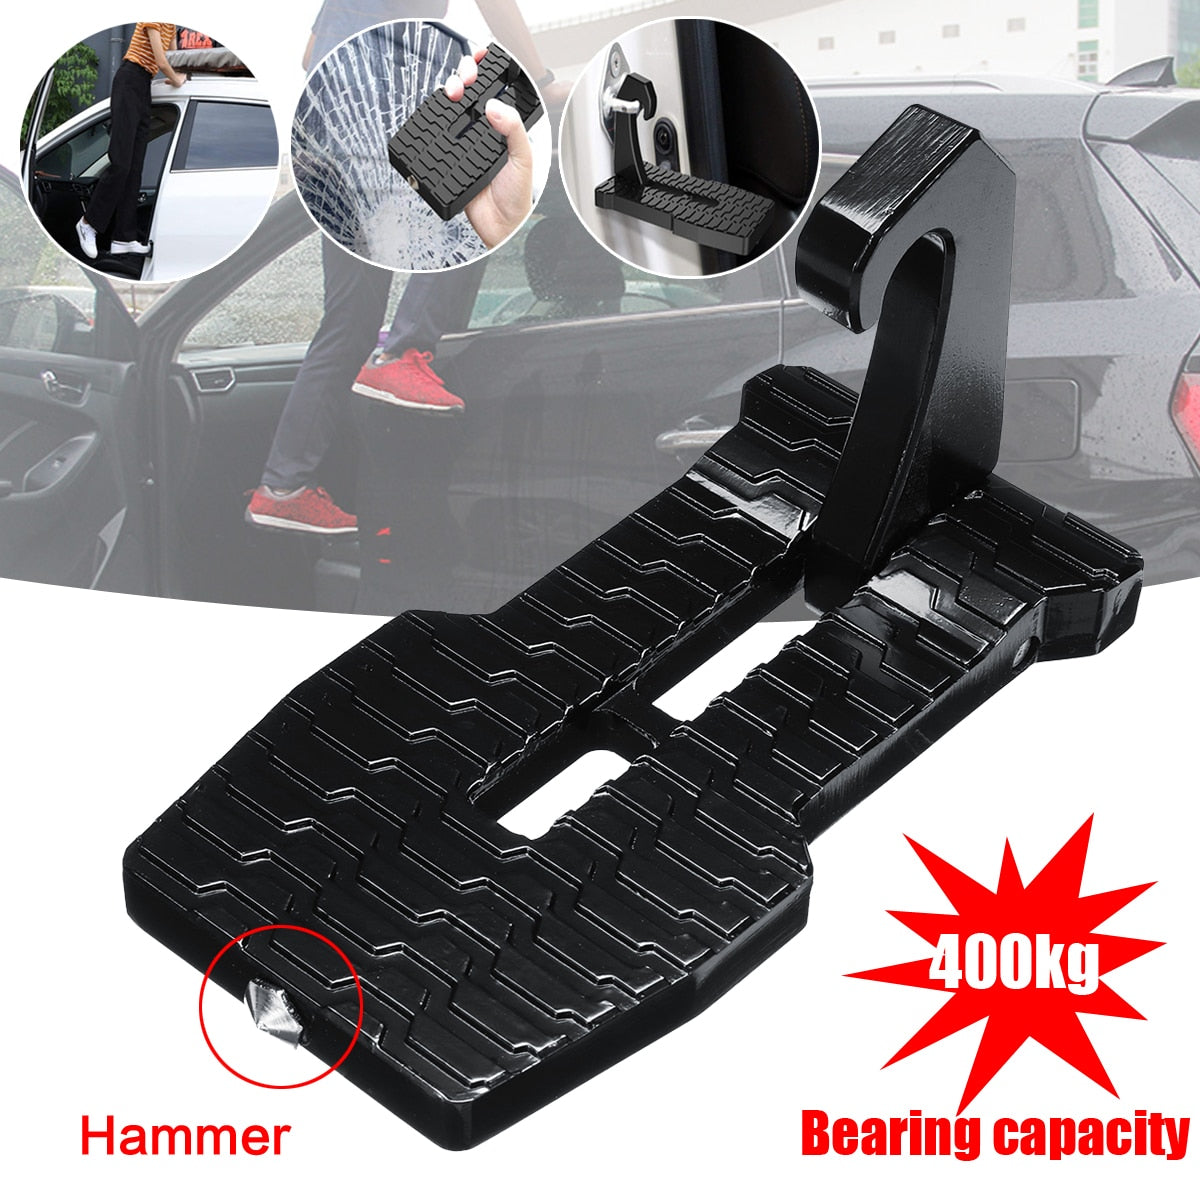 2 In 1 Safety Window Breaker + Car Doorstep - ShopDeals365.com